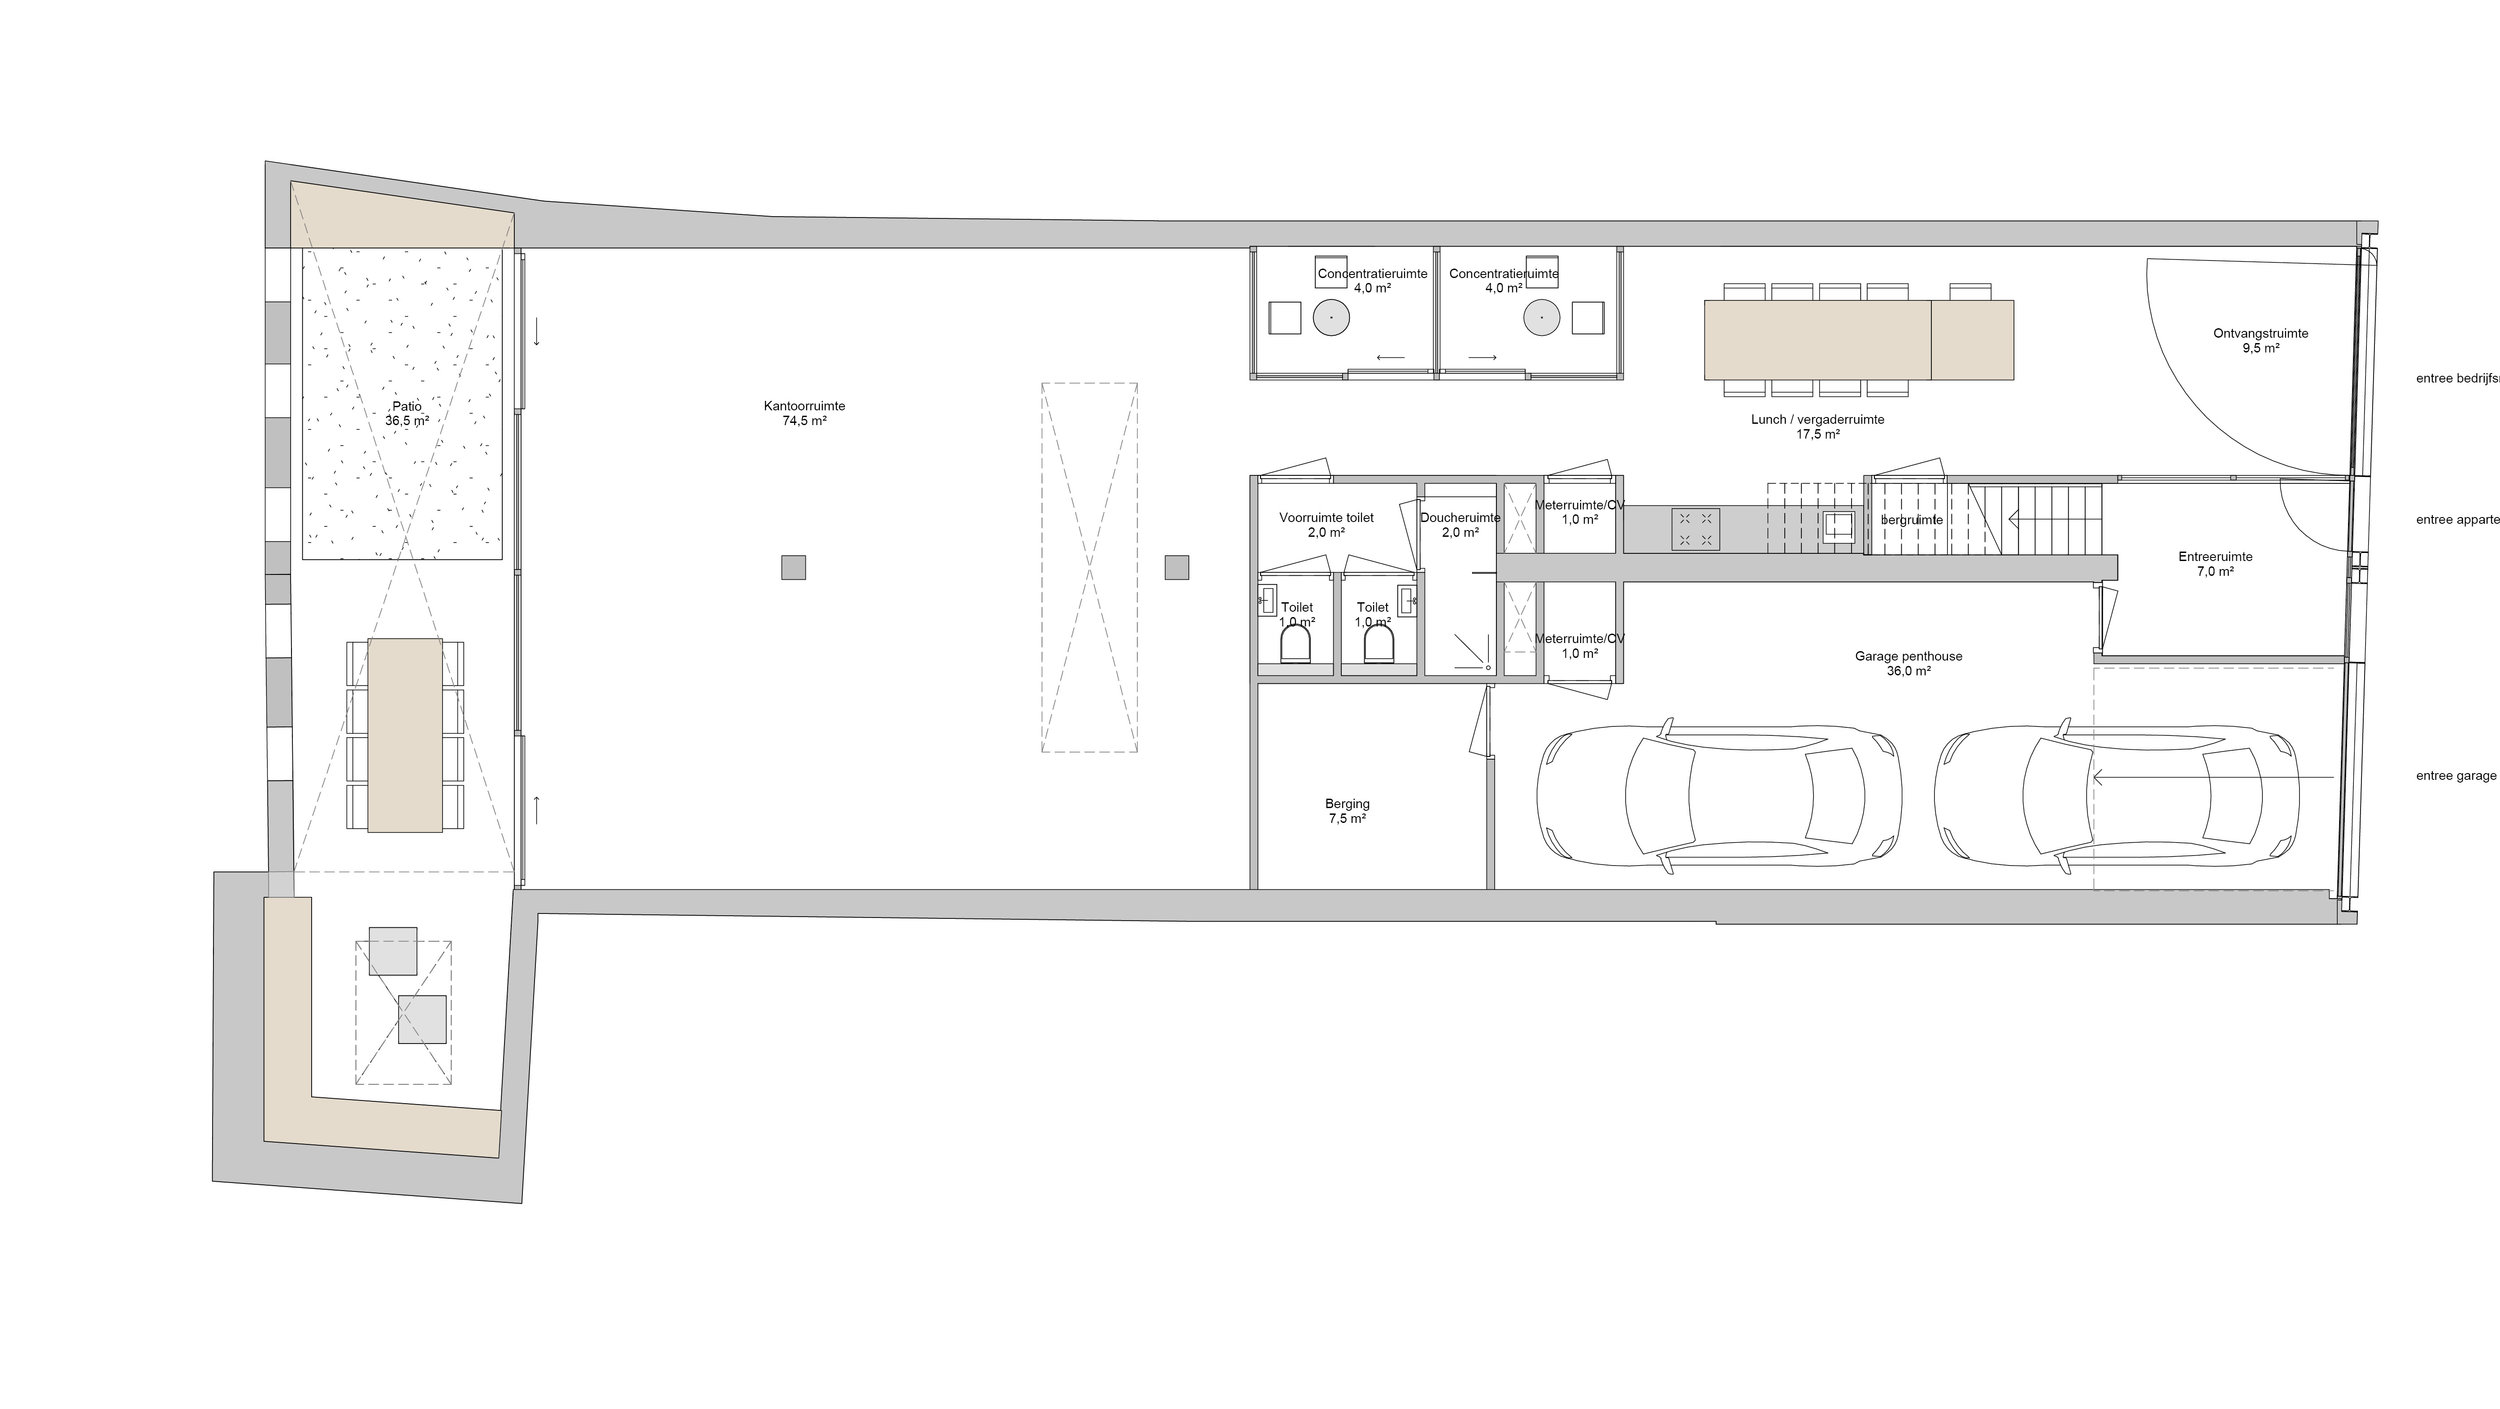 plan of the ground floor, with the office space and the garage of the owner